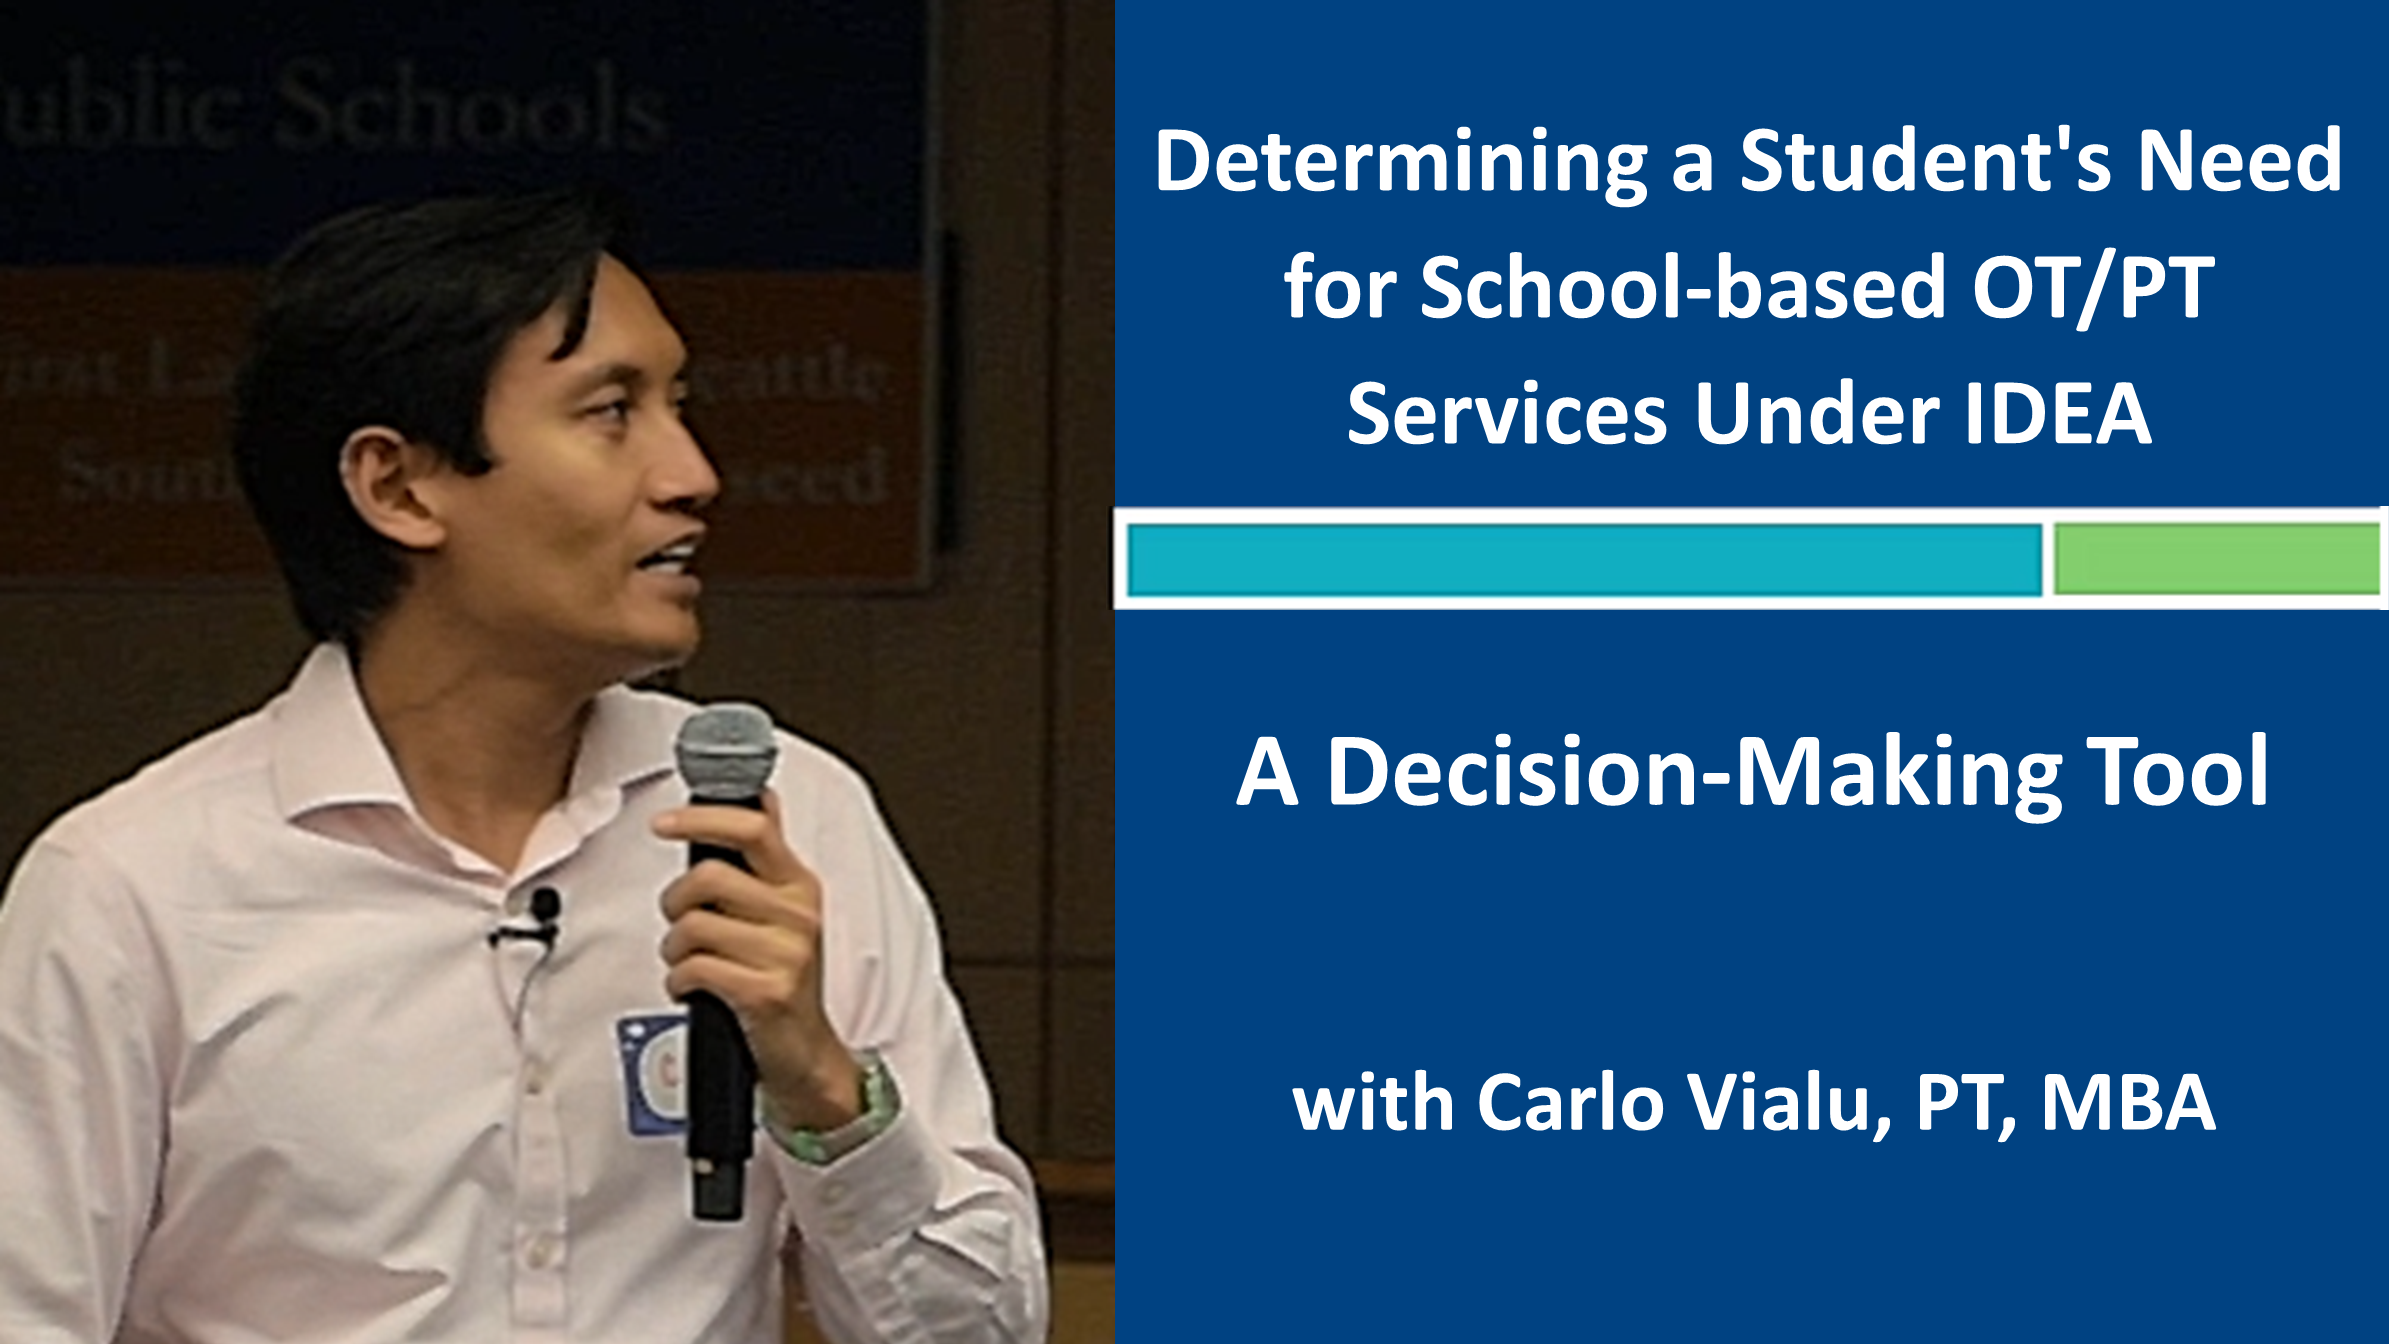 Webinar 7: Determining Needs for School-based OT/PT Services with Carlo Vialu, PT, MBA